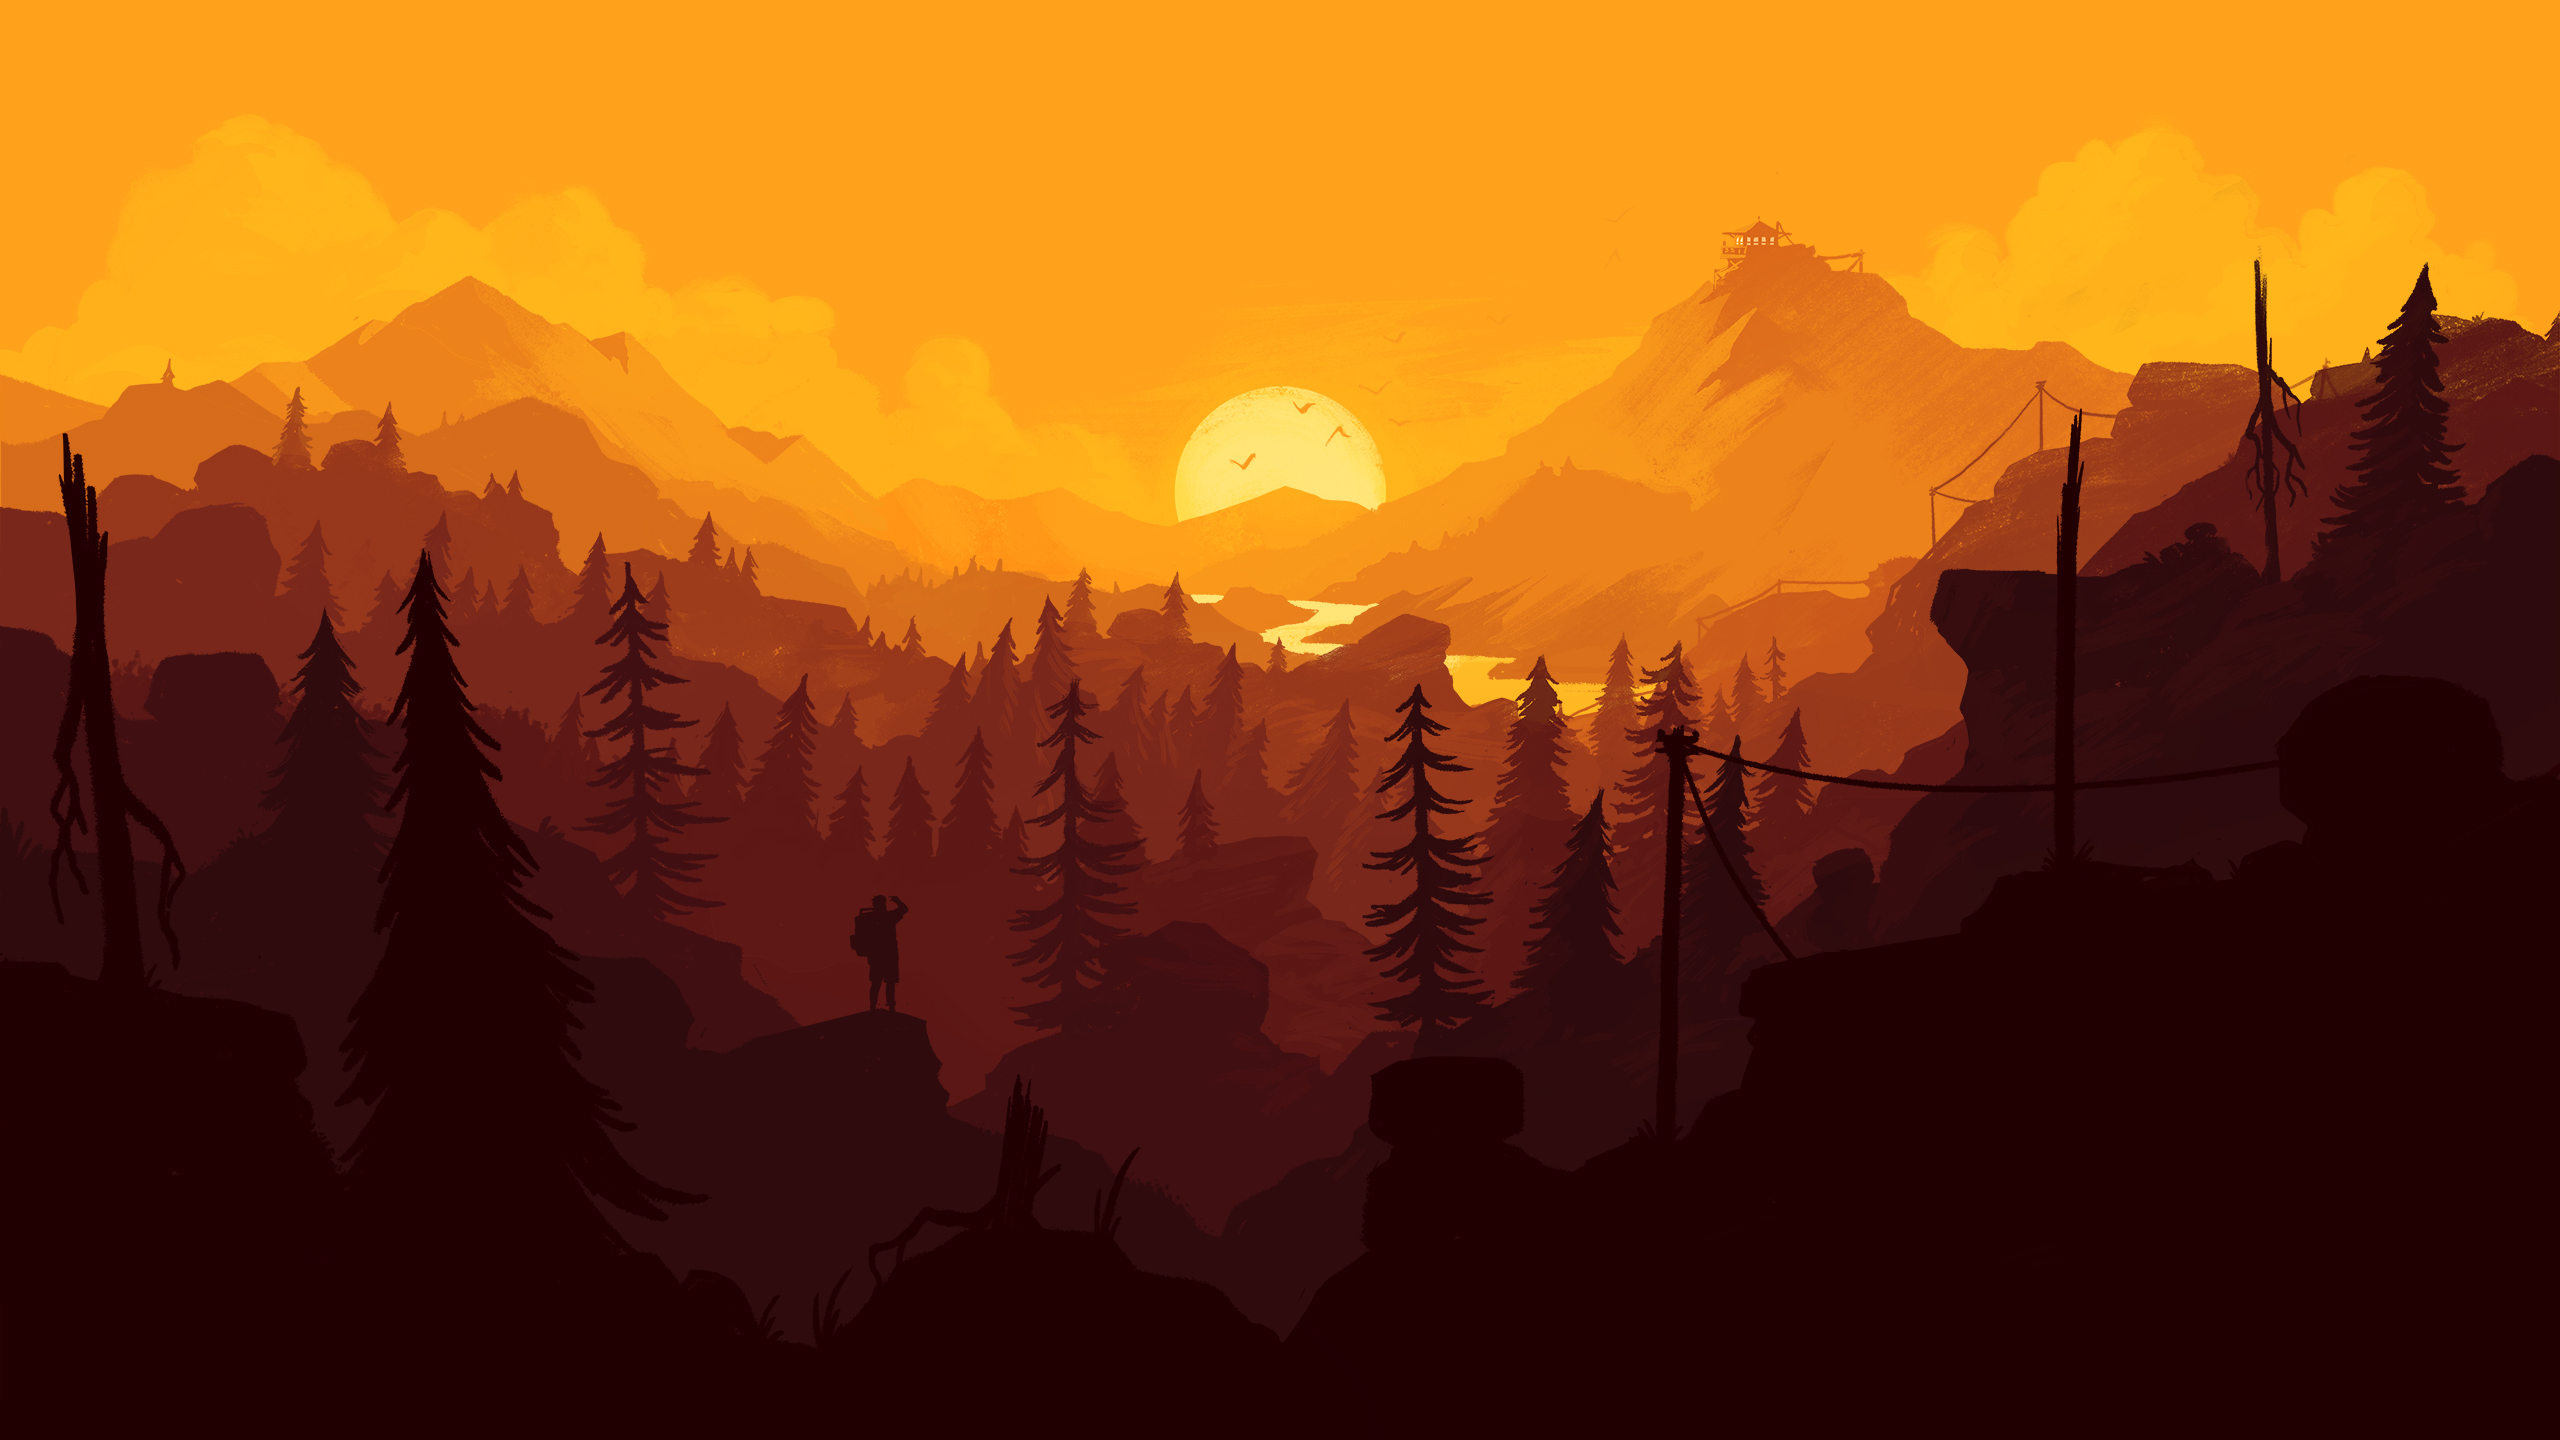 Firewatch Wallpaper desktop 2560x1440 orange